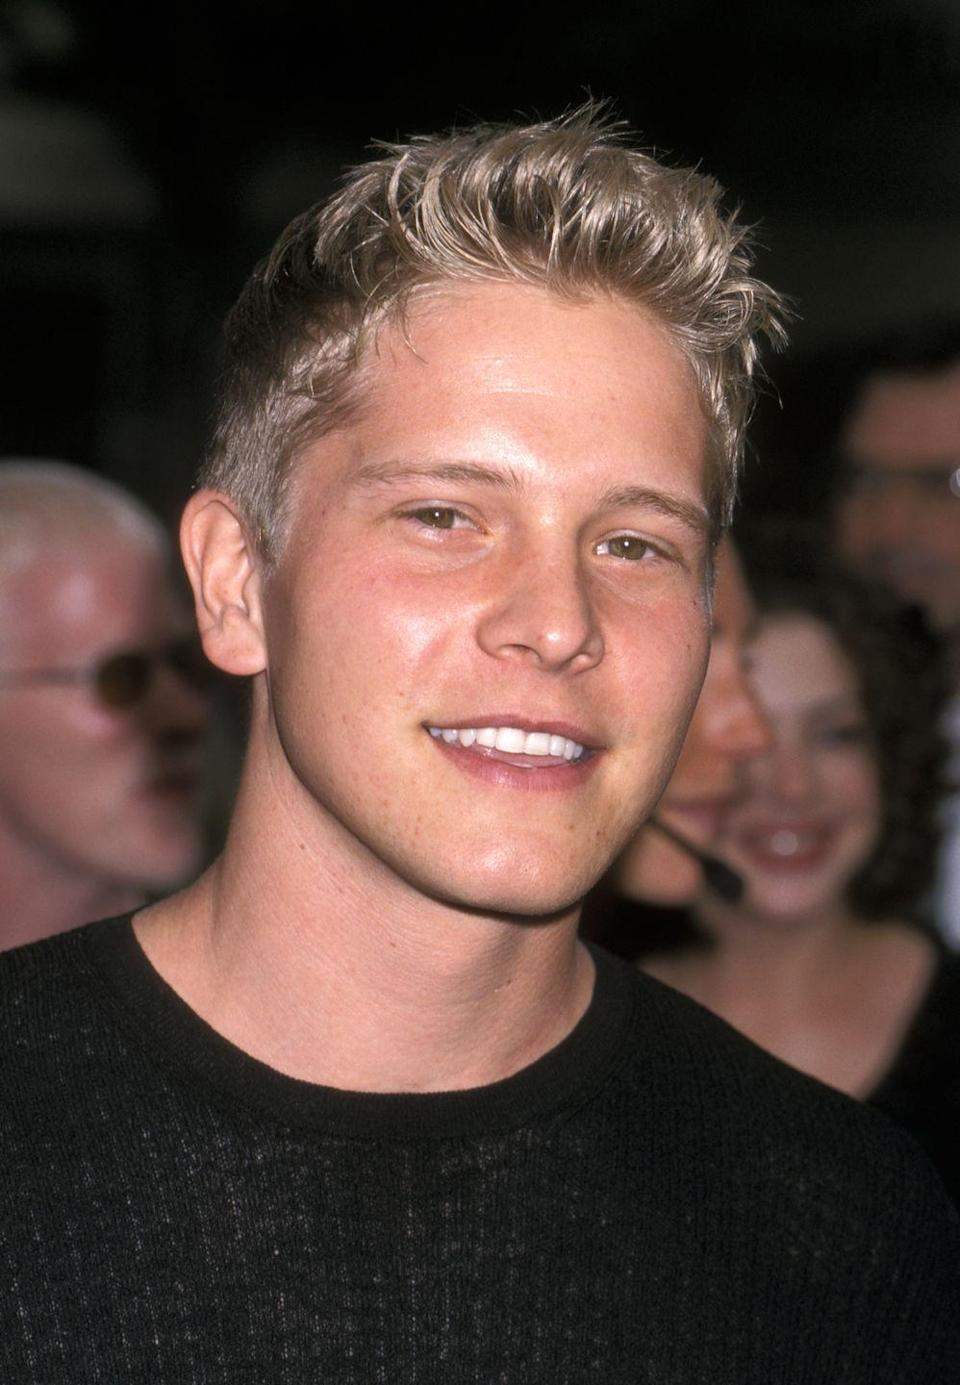 <p>Matt Czuchry joined <em>Gilmore Girls </em>in 2004 as Rory's college boyfriend, Logan Huntzberger. Before, the actor was cast in projects like Judd Apatow's <em>Freaks And Geeks</em> and <em>7th Heaven.</em></p>